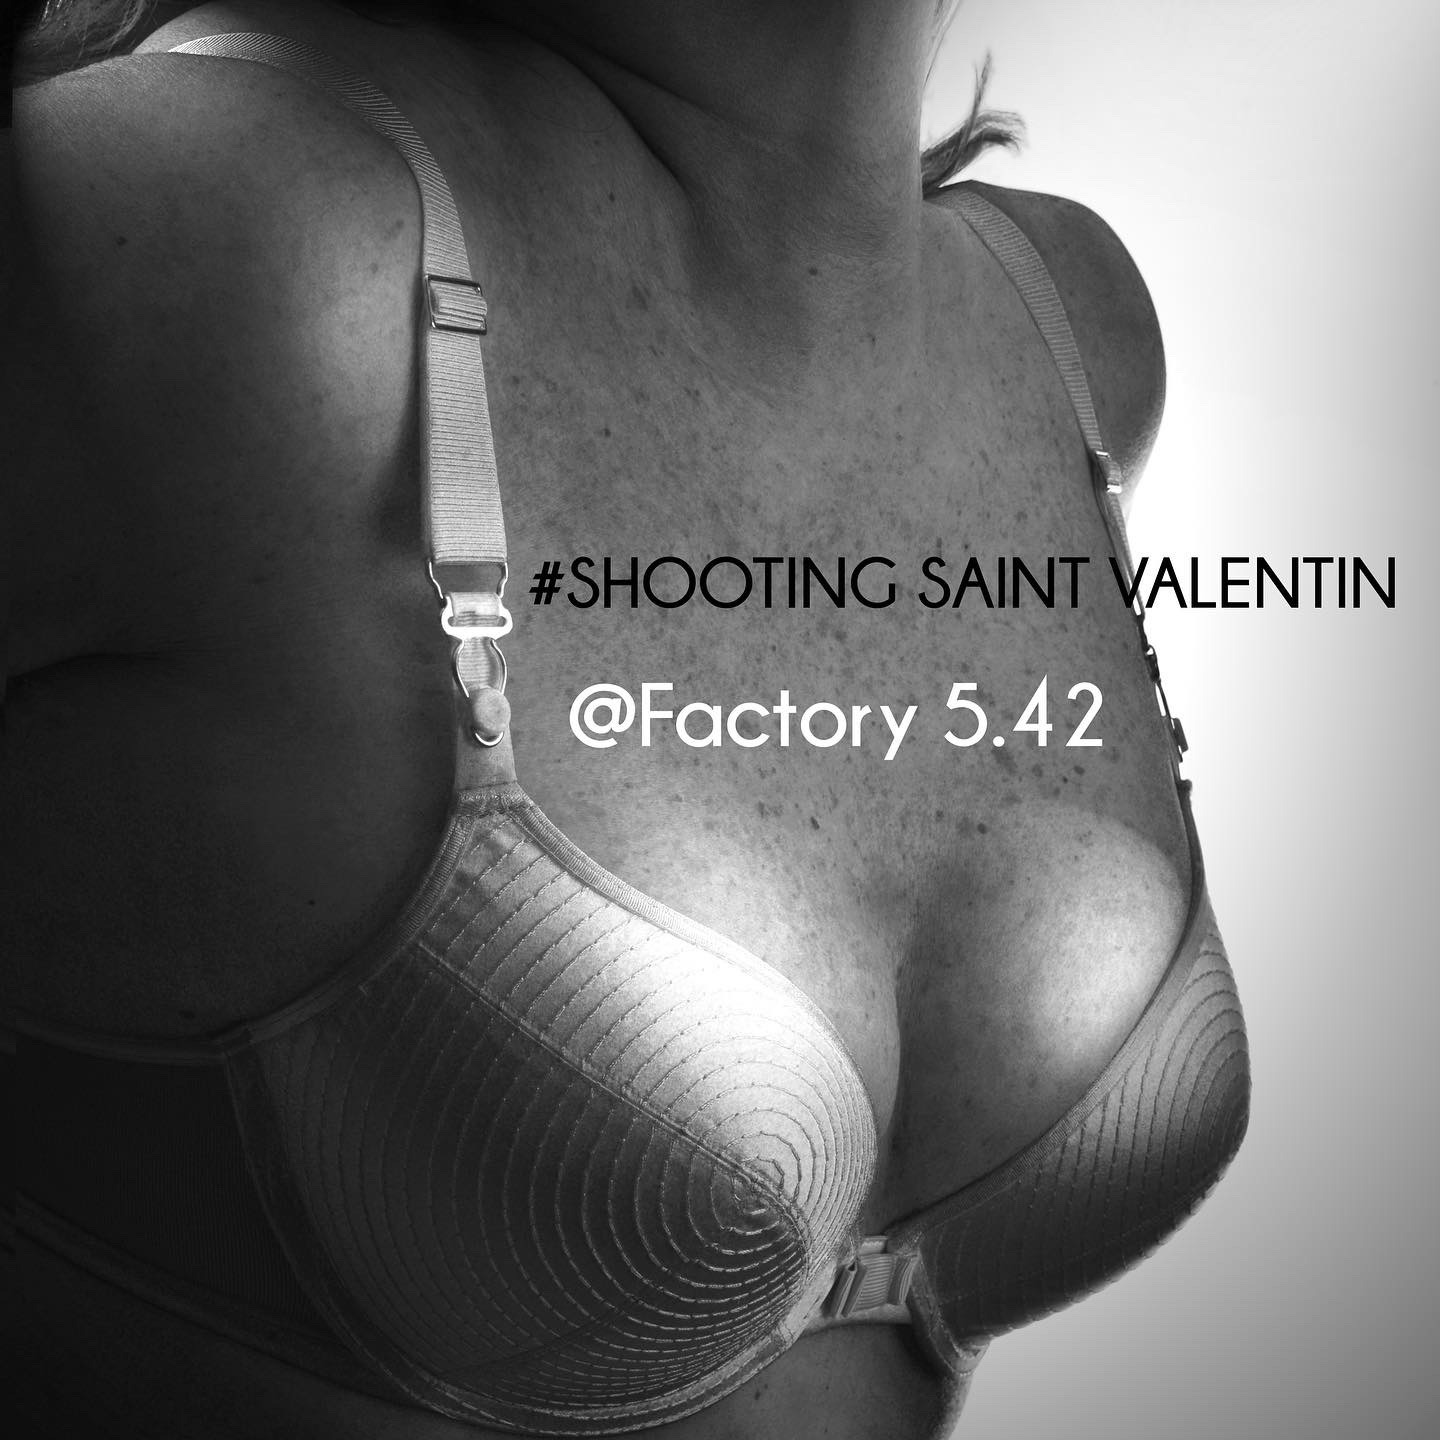 shooting st valentin @factory 5.42